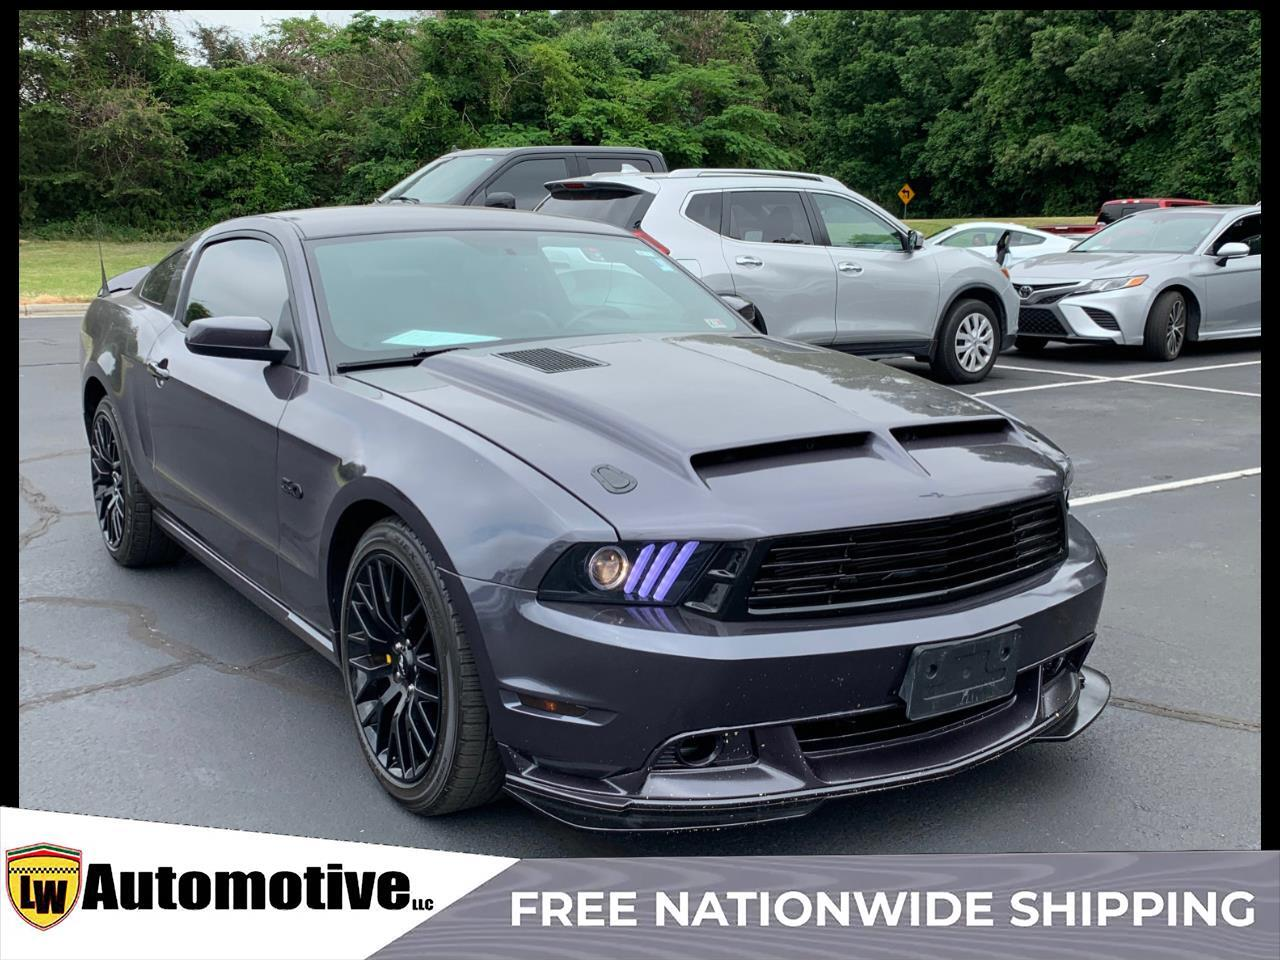 2012 Ford Mustang 2dr Cpe GT